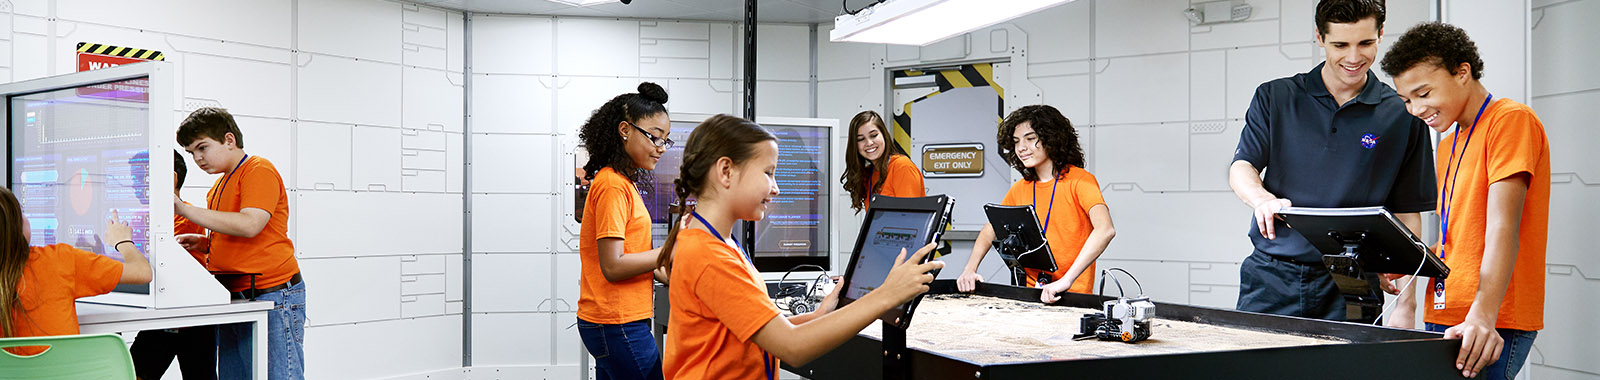 Campers experimenting with robotics to explore Mars